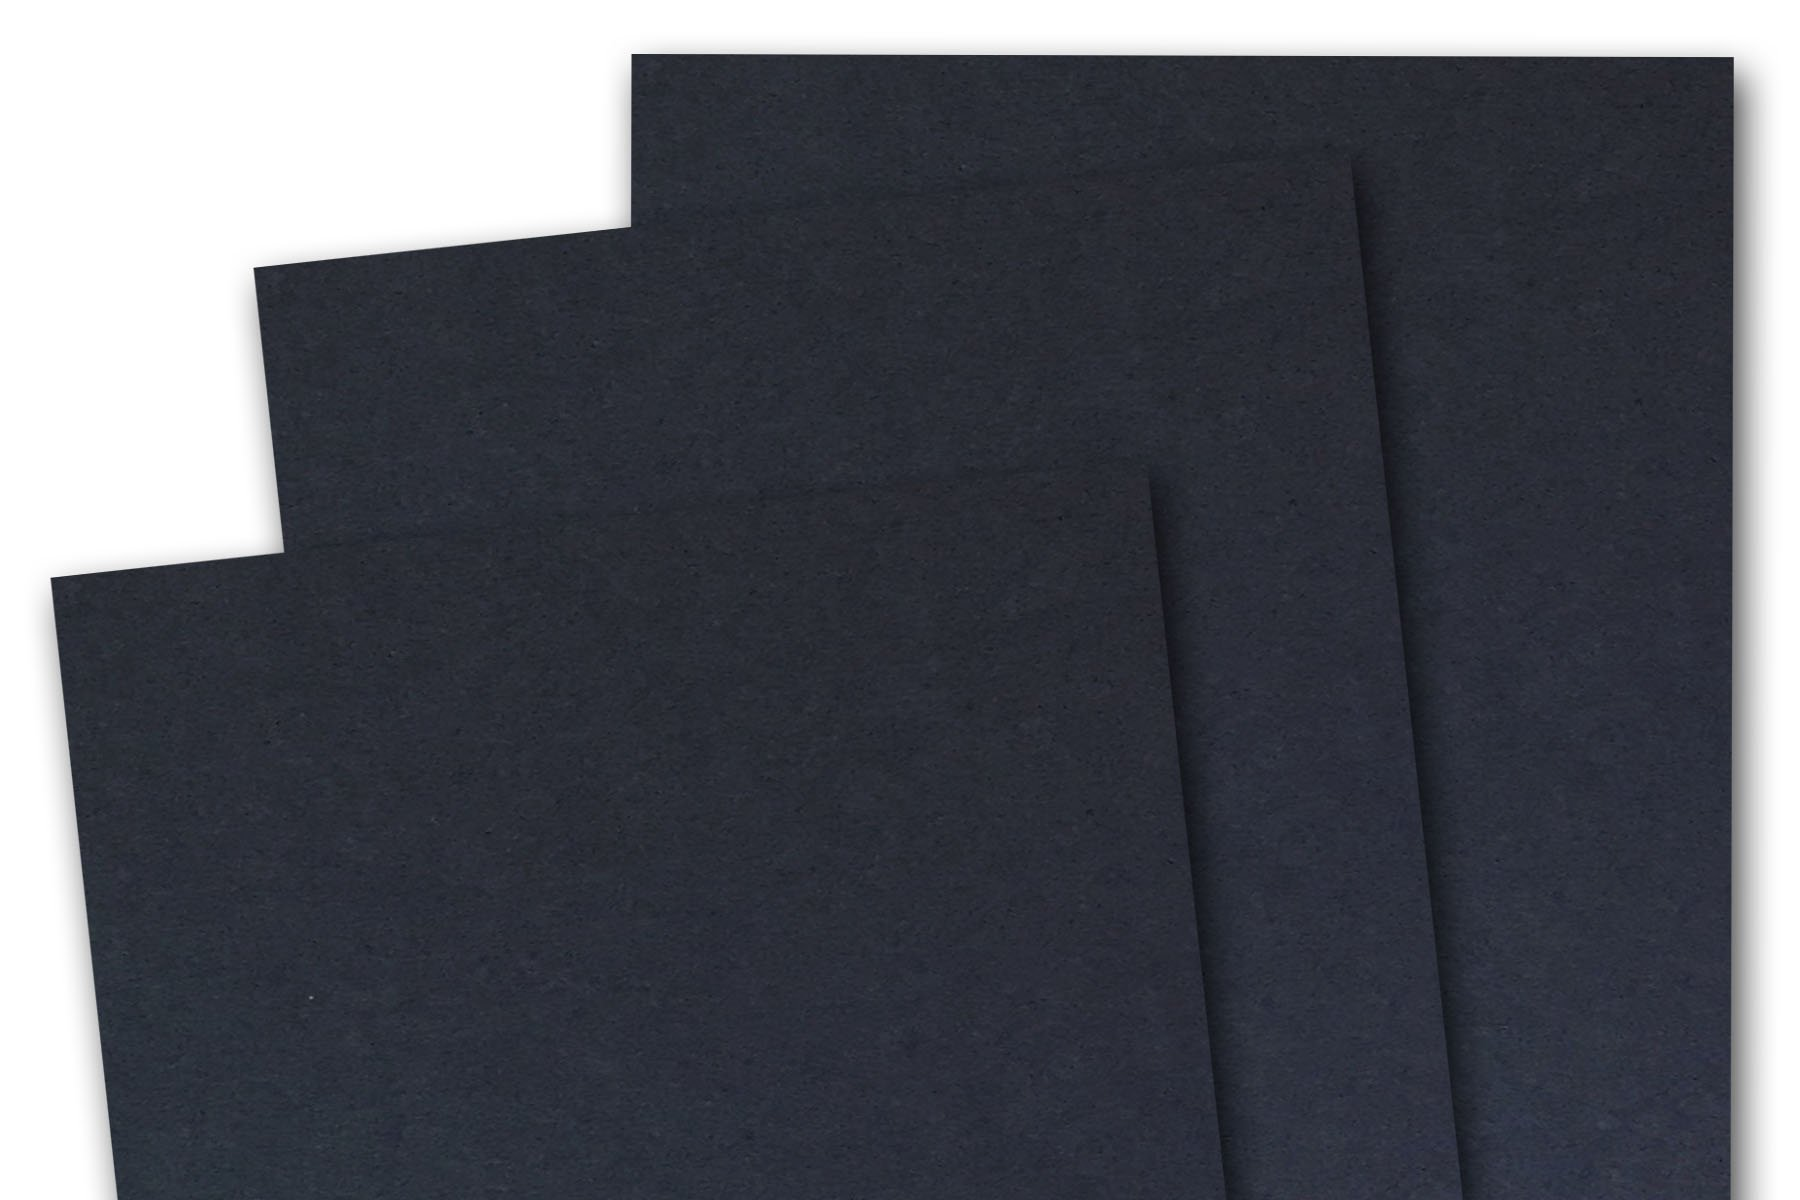 Premium Colored Blank 3'' x 5'' Card Stock - Great for Stamping, Paper Punch, Flash Cards, Scrapbooking, Art Projects Etc. (Black) by CutCardStock (Image #1)